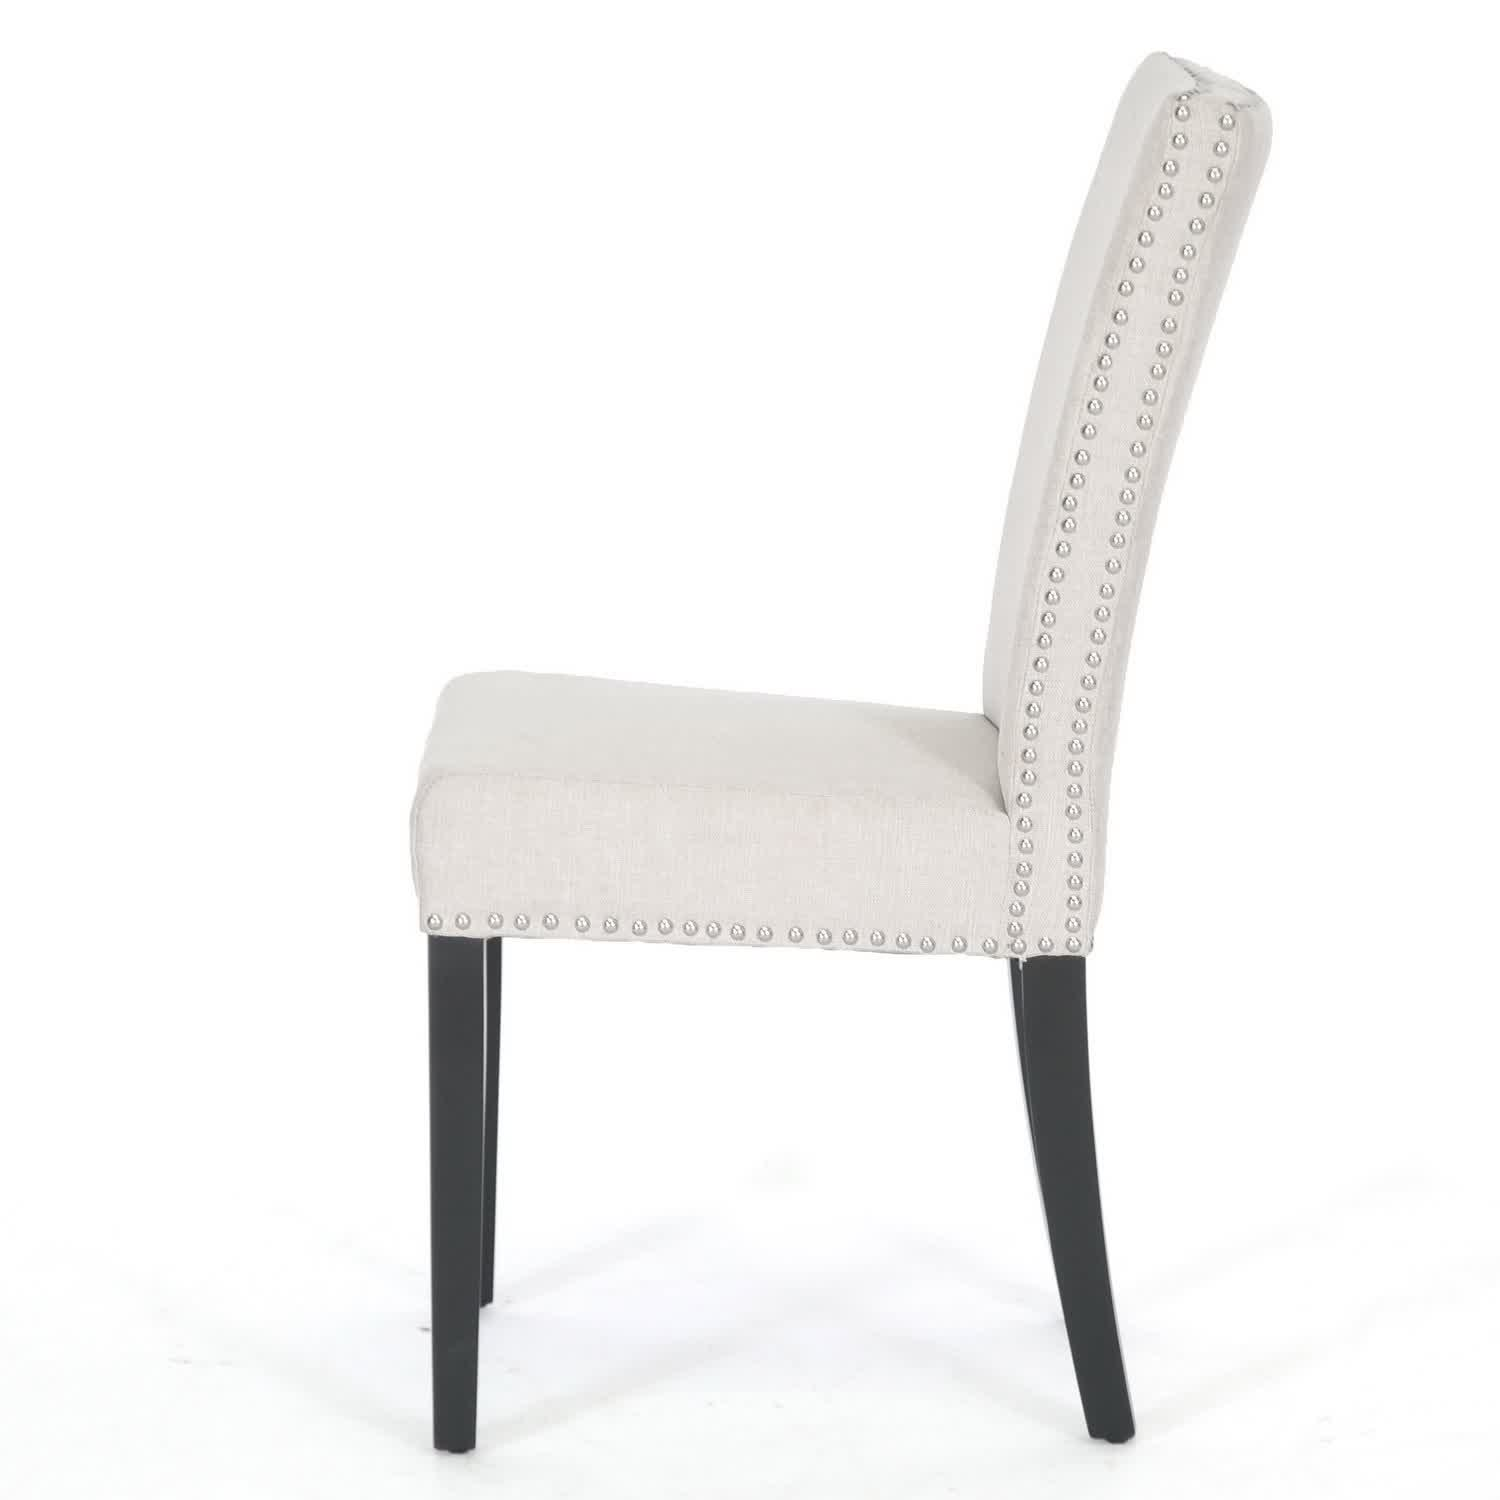 white chairs dining room | White Upholstered Dining Chair Displaying Infinite ...